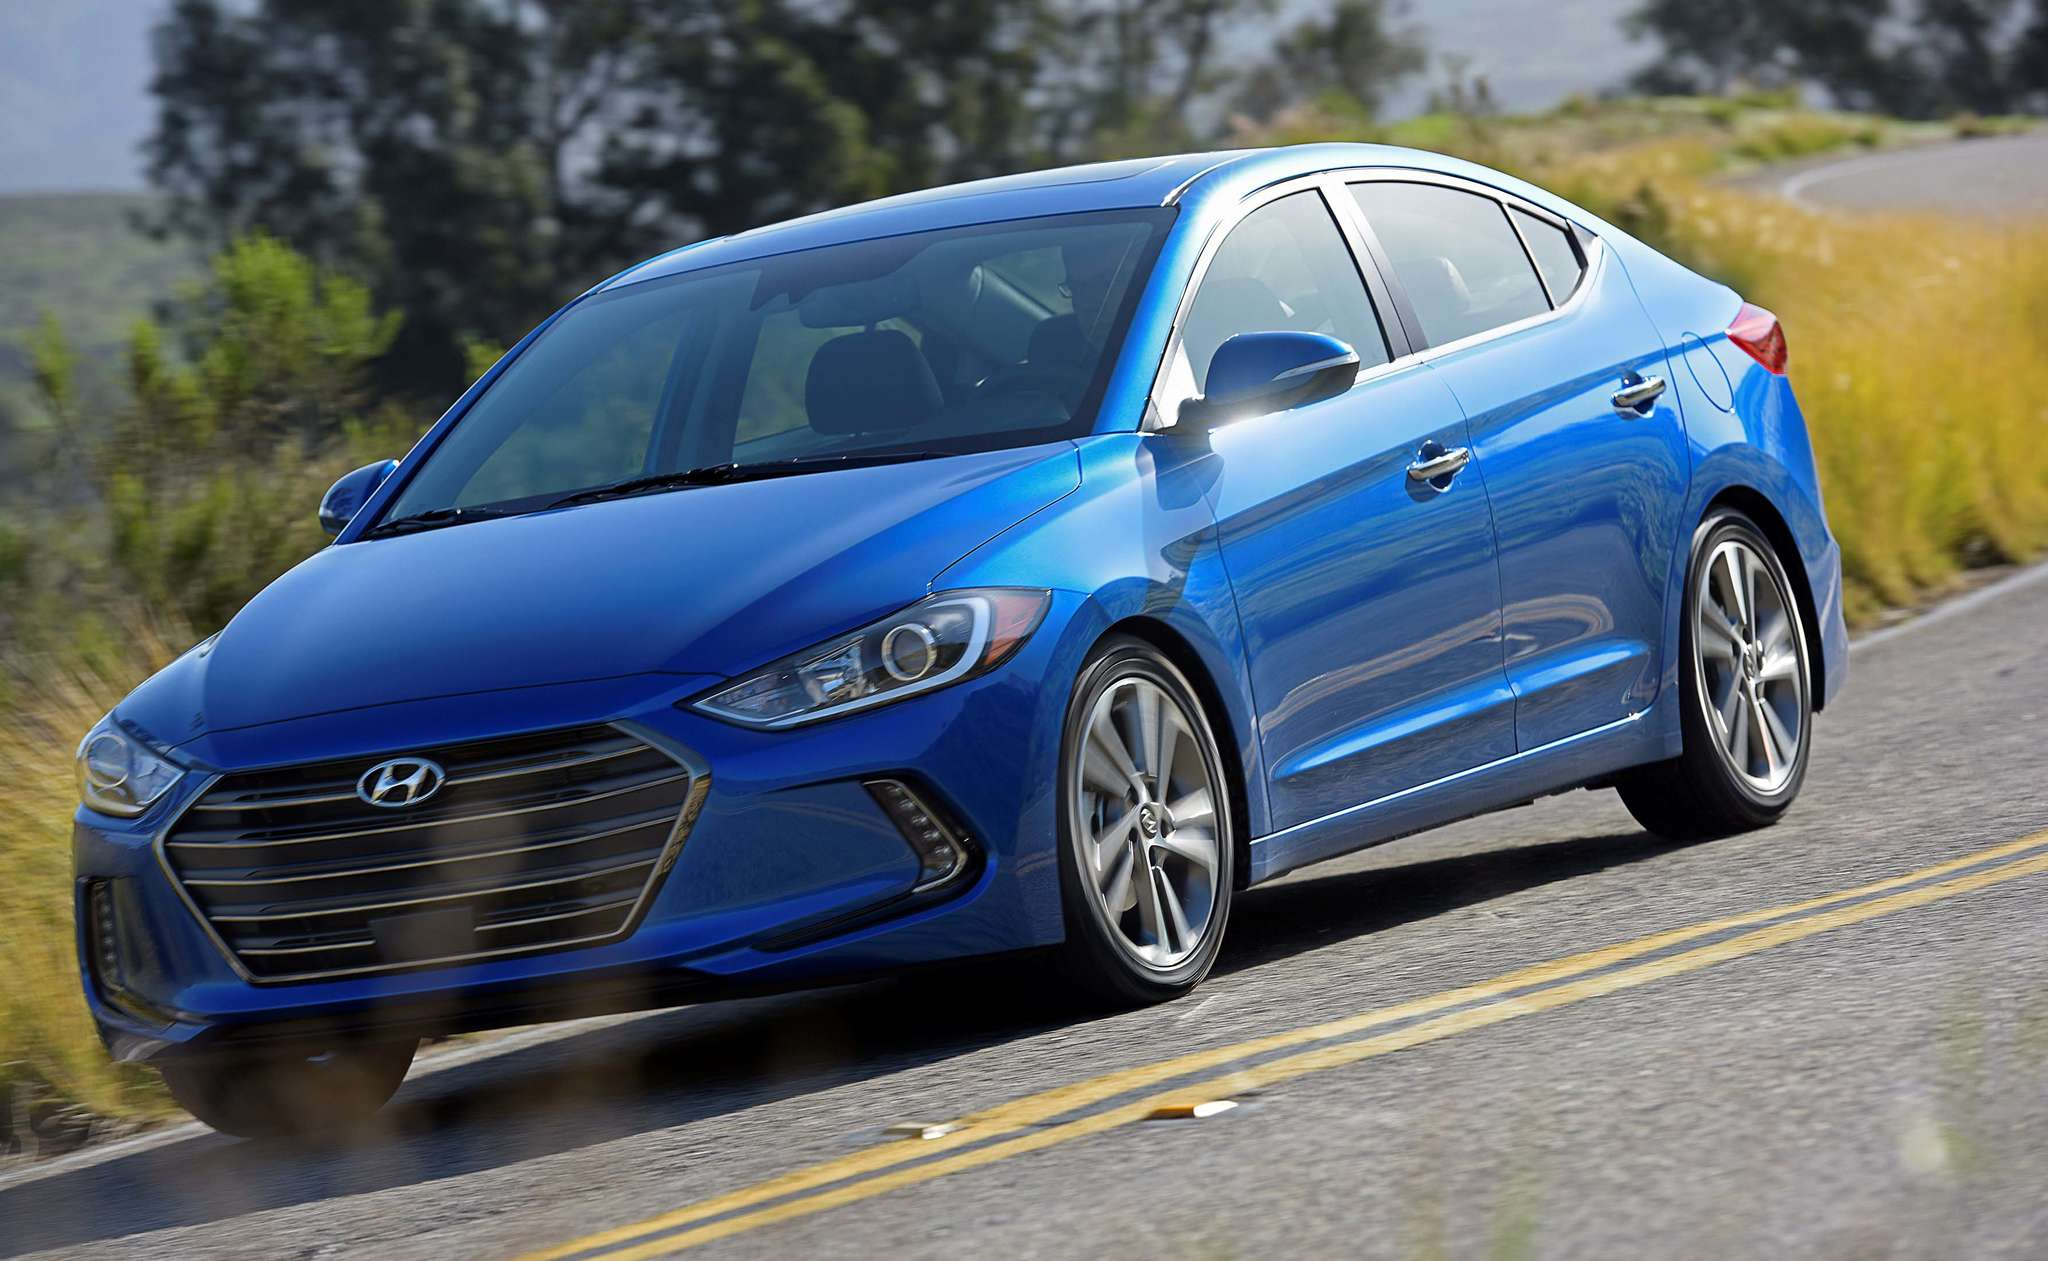 The Hyundai Elantra gets an upgrade for 2017, with power and handling stepping up. Fuel economy is sweet, too.